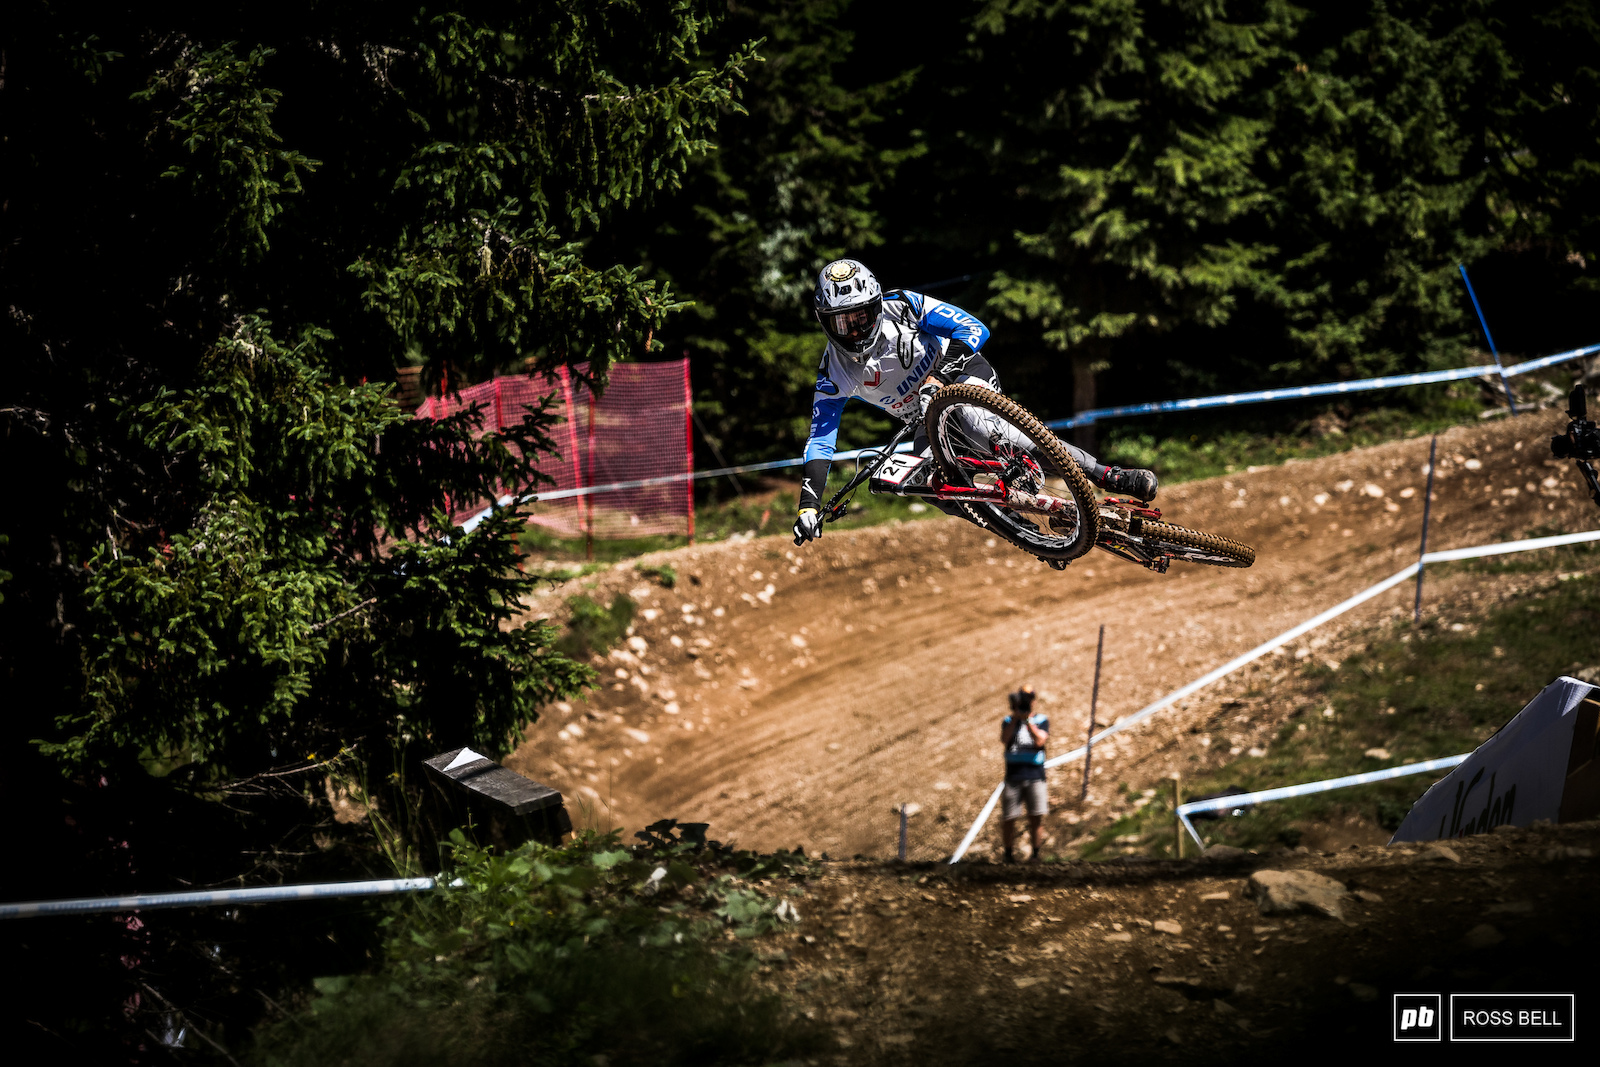 Dakotah Norton looks to have good track speed here in Lenzerheide.